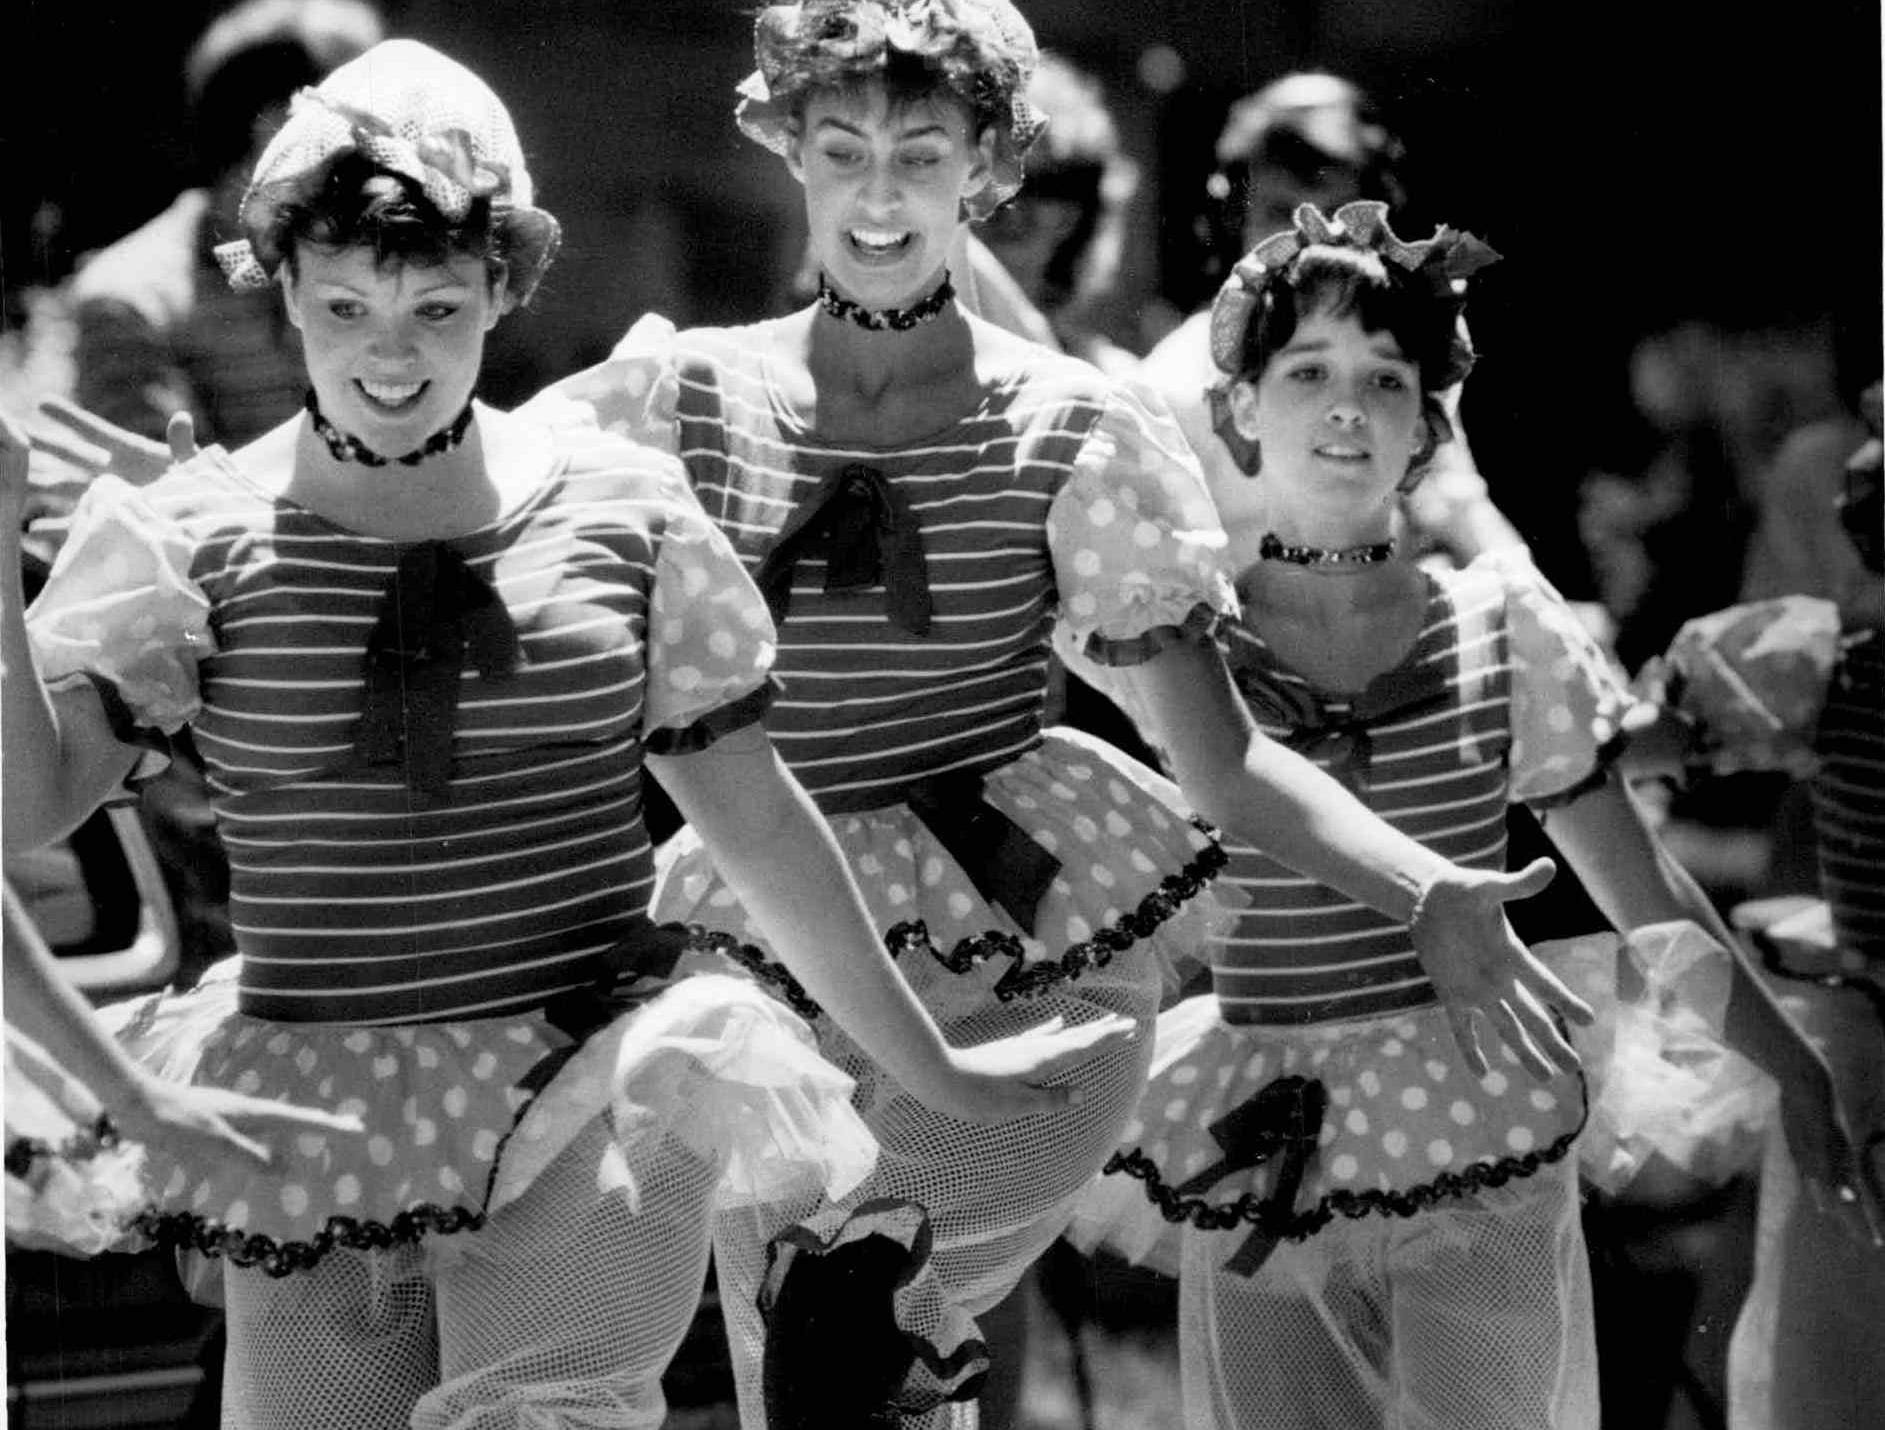 In this 1987 photo, members of the Dianne Lynn Dance Theatre perform during the 11th annual Park Avenue Festival.